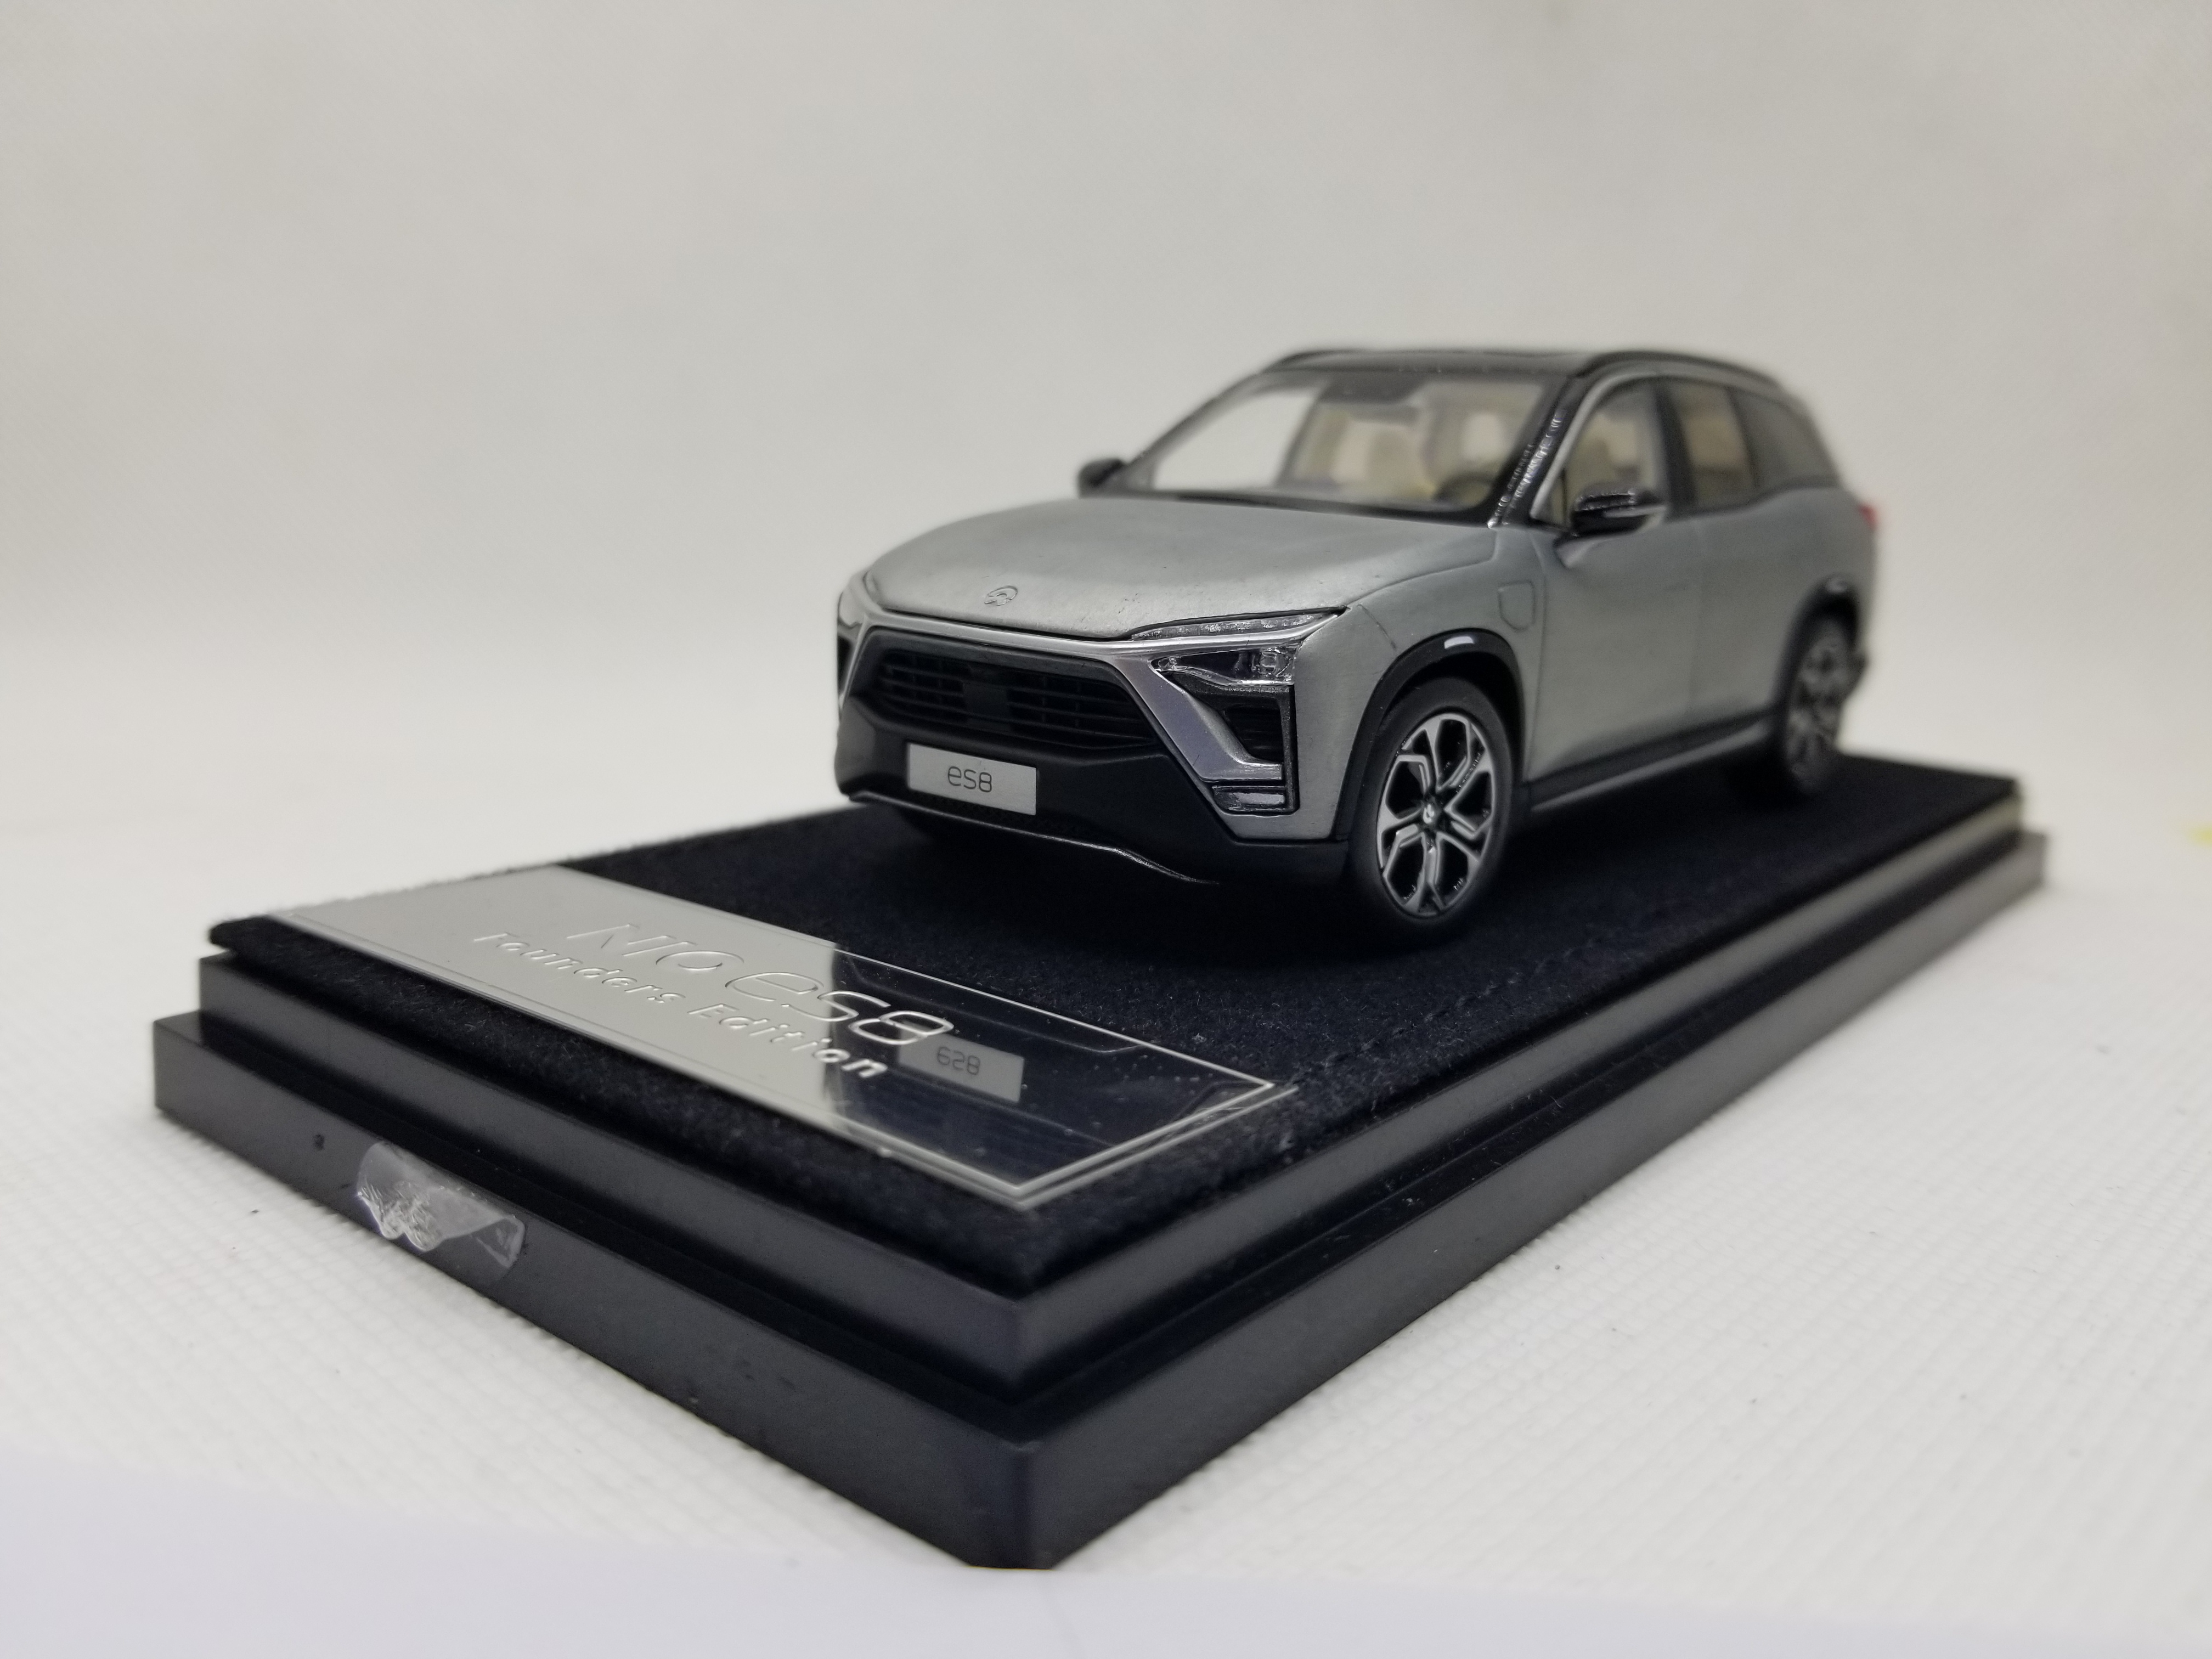 1/43 Weilai NIO ES8 2018 Gray Founder Edition SUV Electric Sport Car Alloy Toy Car, Diecast Scale Model Car, Collectible Model Car, Miniature Collection Die-cast Toy Vehicles Gifts